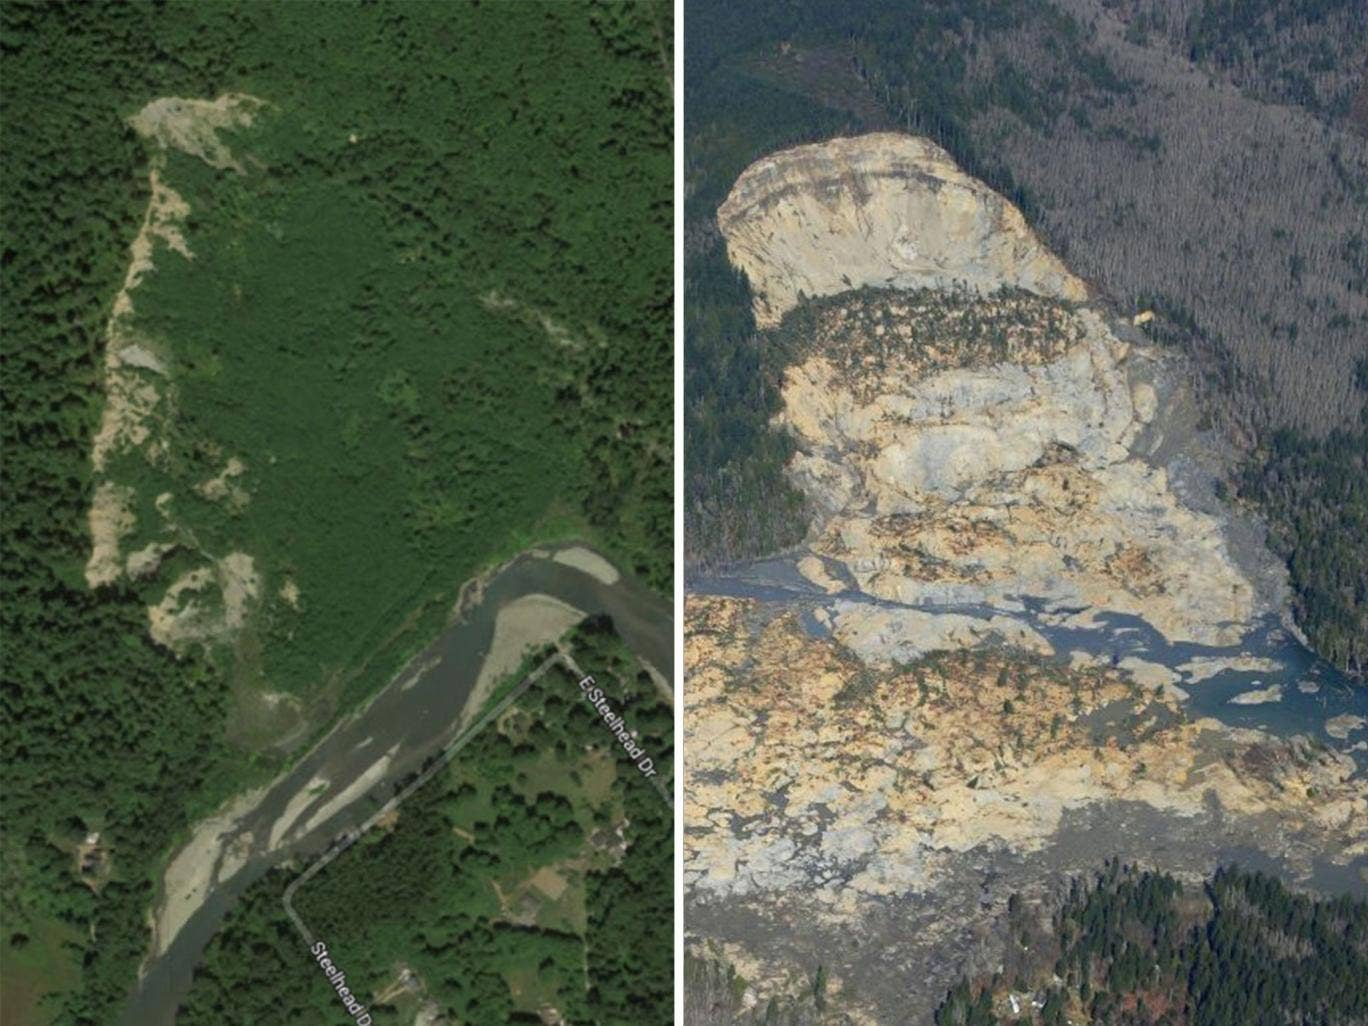 Incredible before and after pictures showing the devastation of the landslide in Washington state